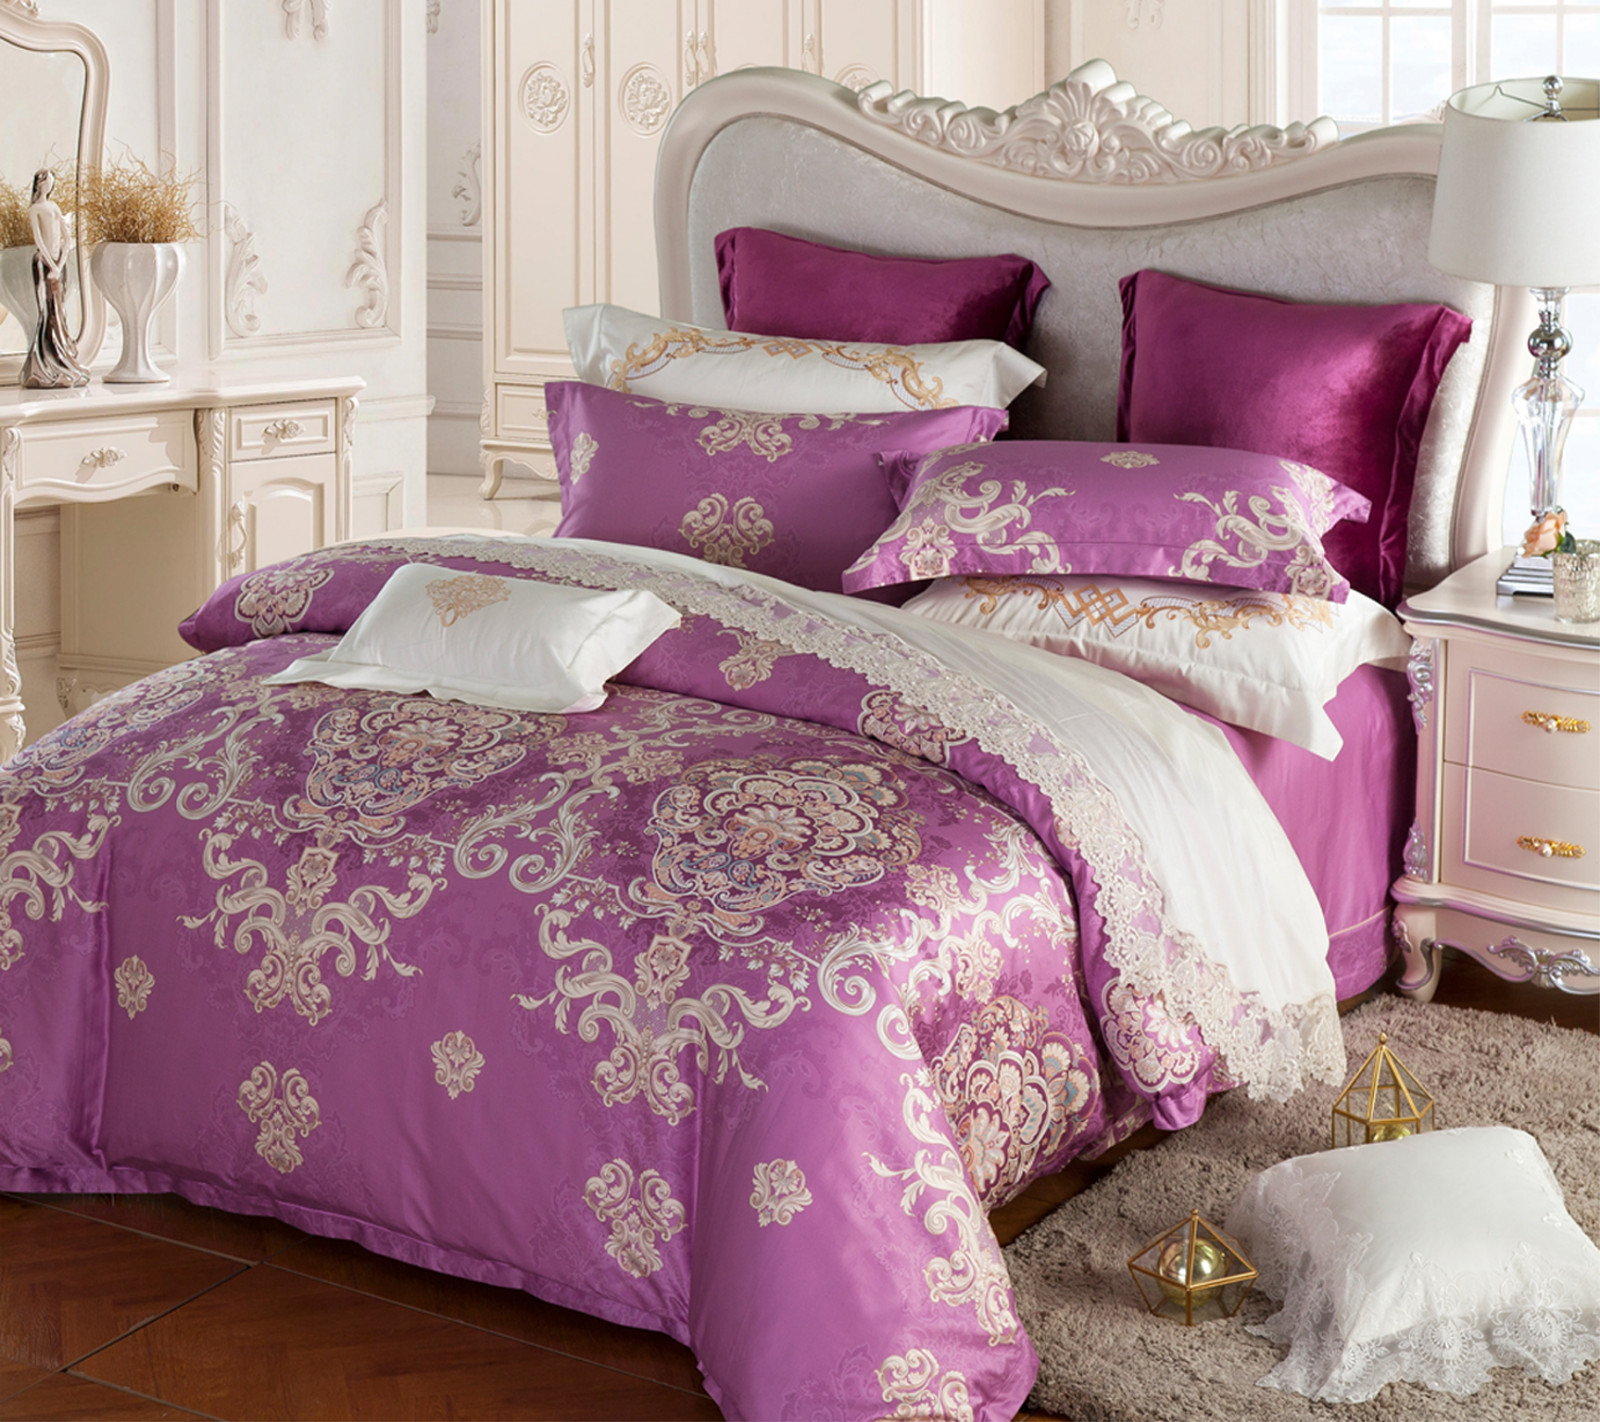 Daphne Brand gorgeous designed 100 cotton bedding sets cotton bed